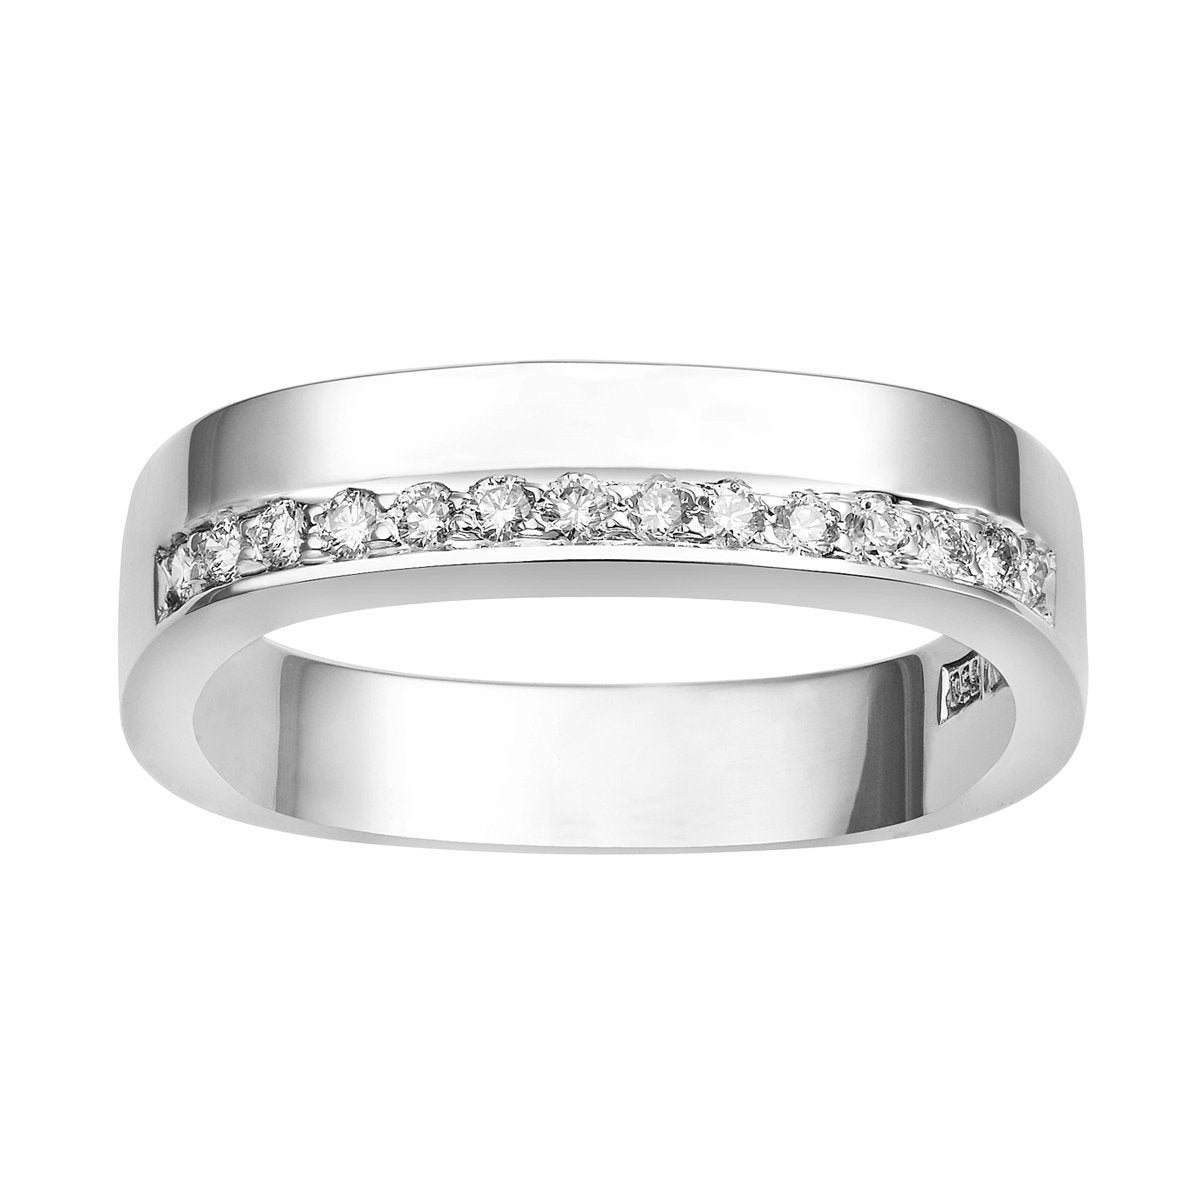 Quadri diamond ring